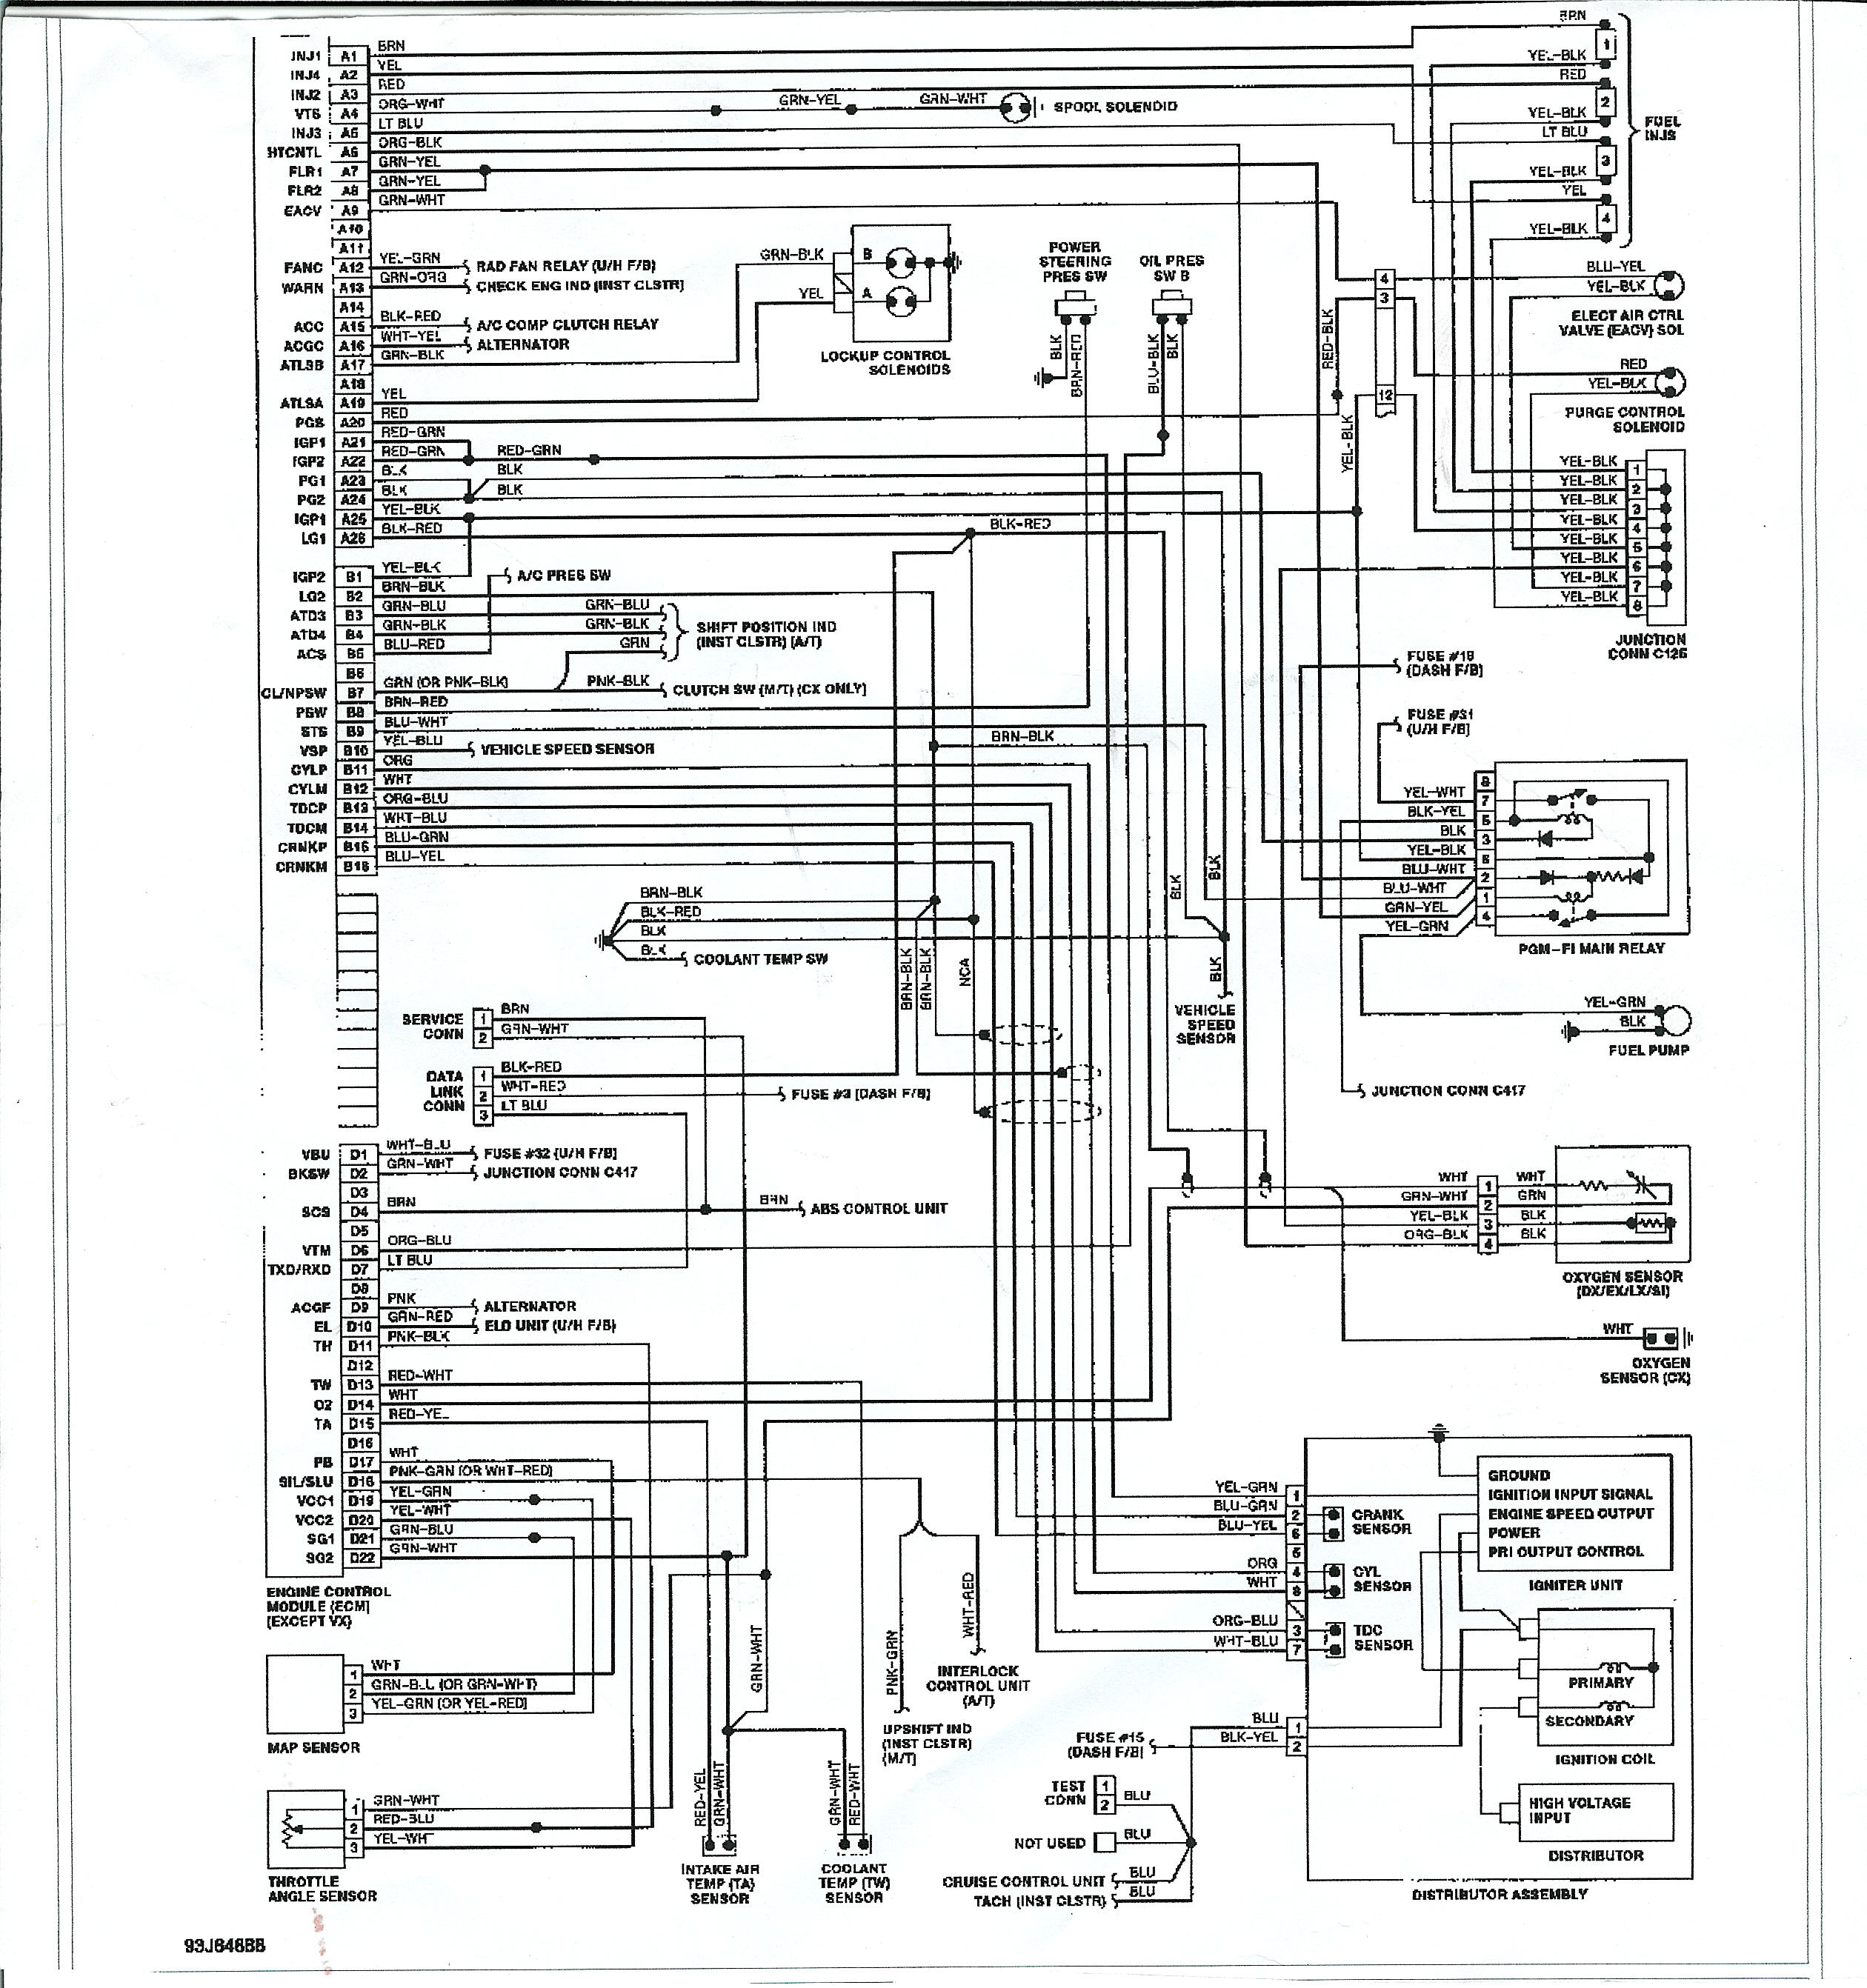 obd2 connector pinout diagram as well 1995 honda civic ecu wiring civic obd2 wire harness schematic [ 2520 x 2684 Pixel ]